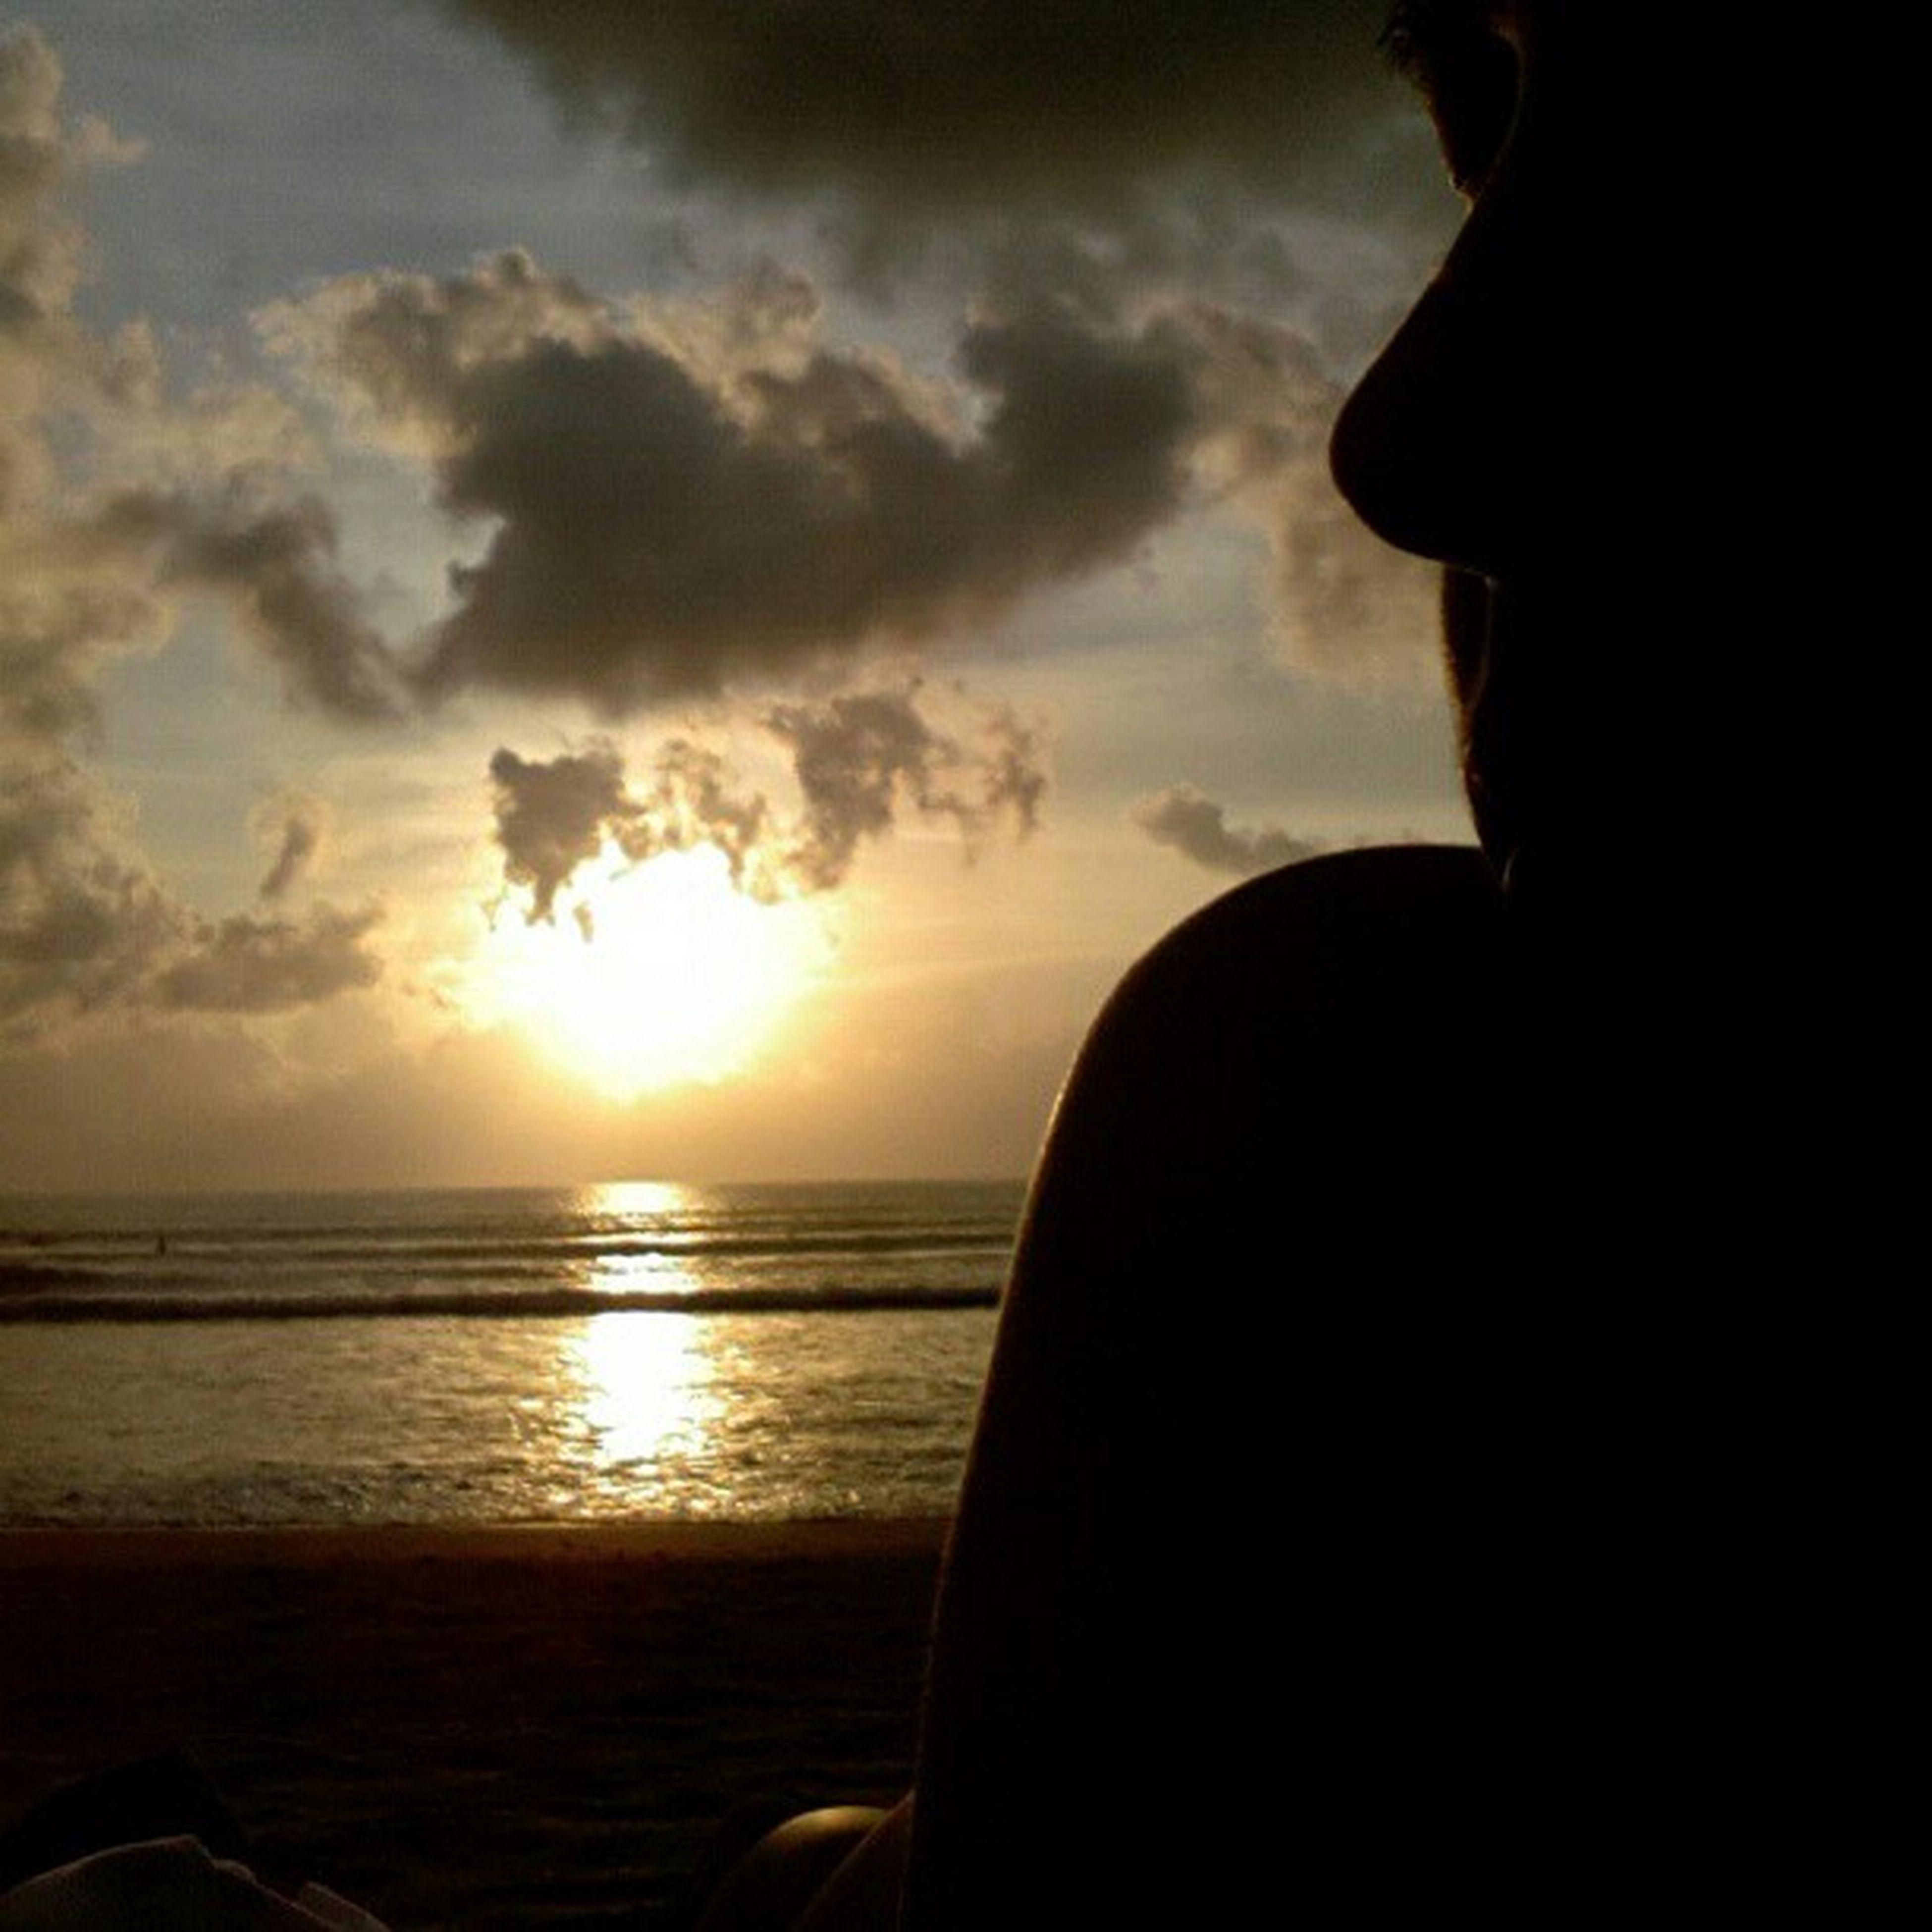 sunset, horizon over water, sea, sky, water, scenics, tranquil scene, sun, beauty in nature, tranquility, beach, cloud - sky, silhouette, cloud, nature, idyllic, one person, reflection, orange color, sunlight